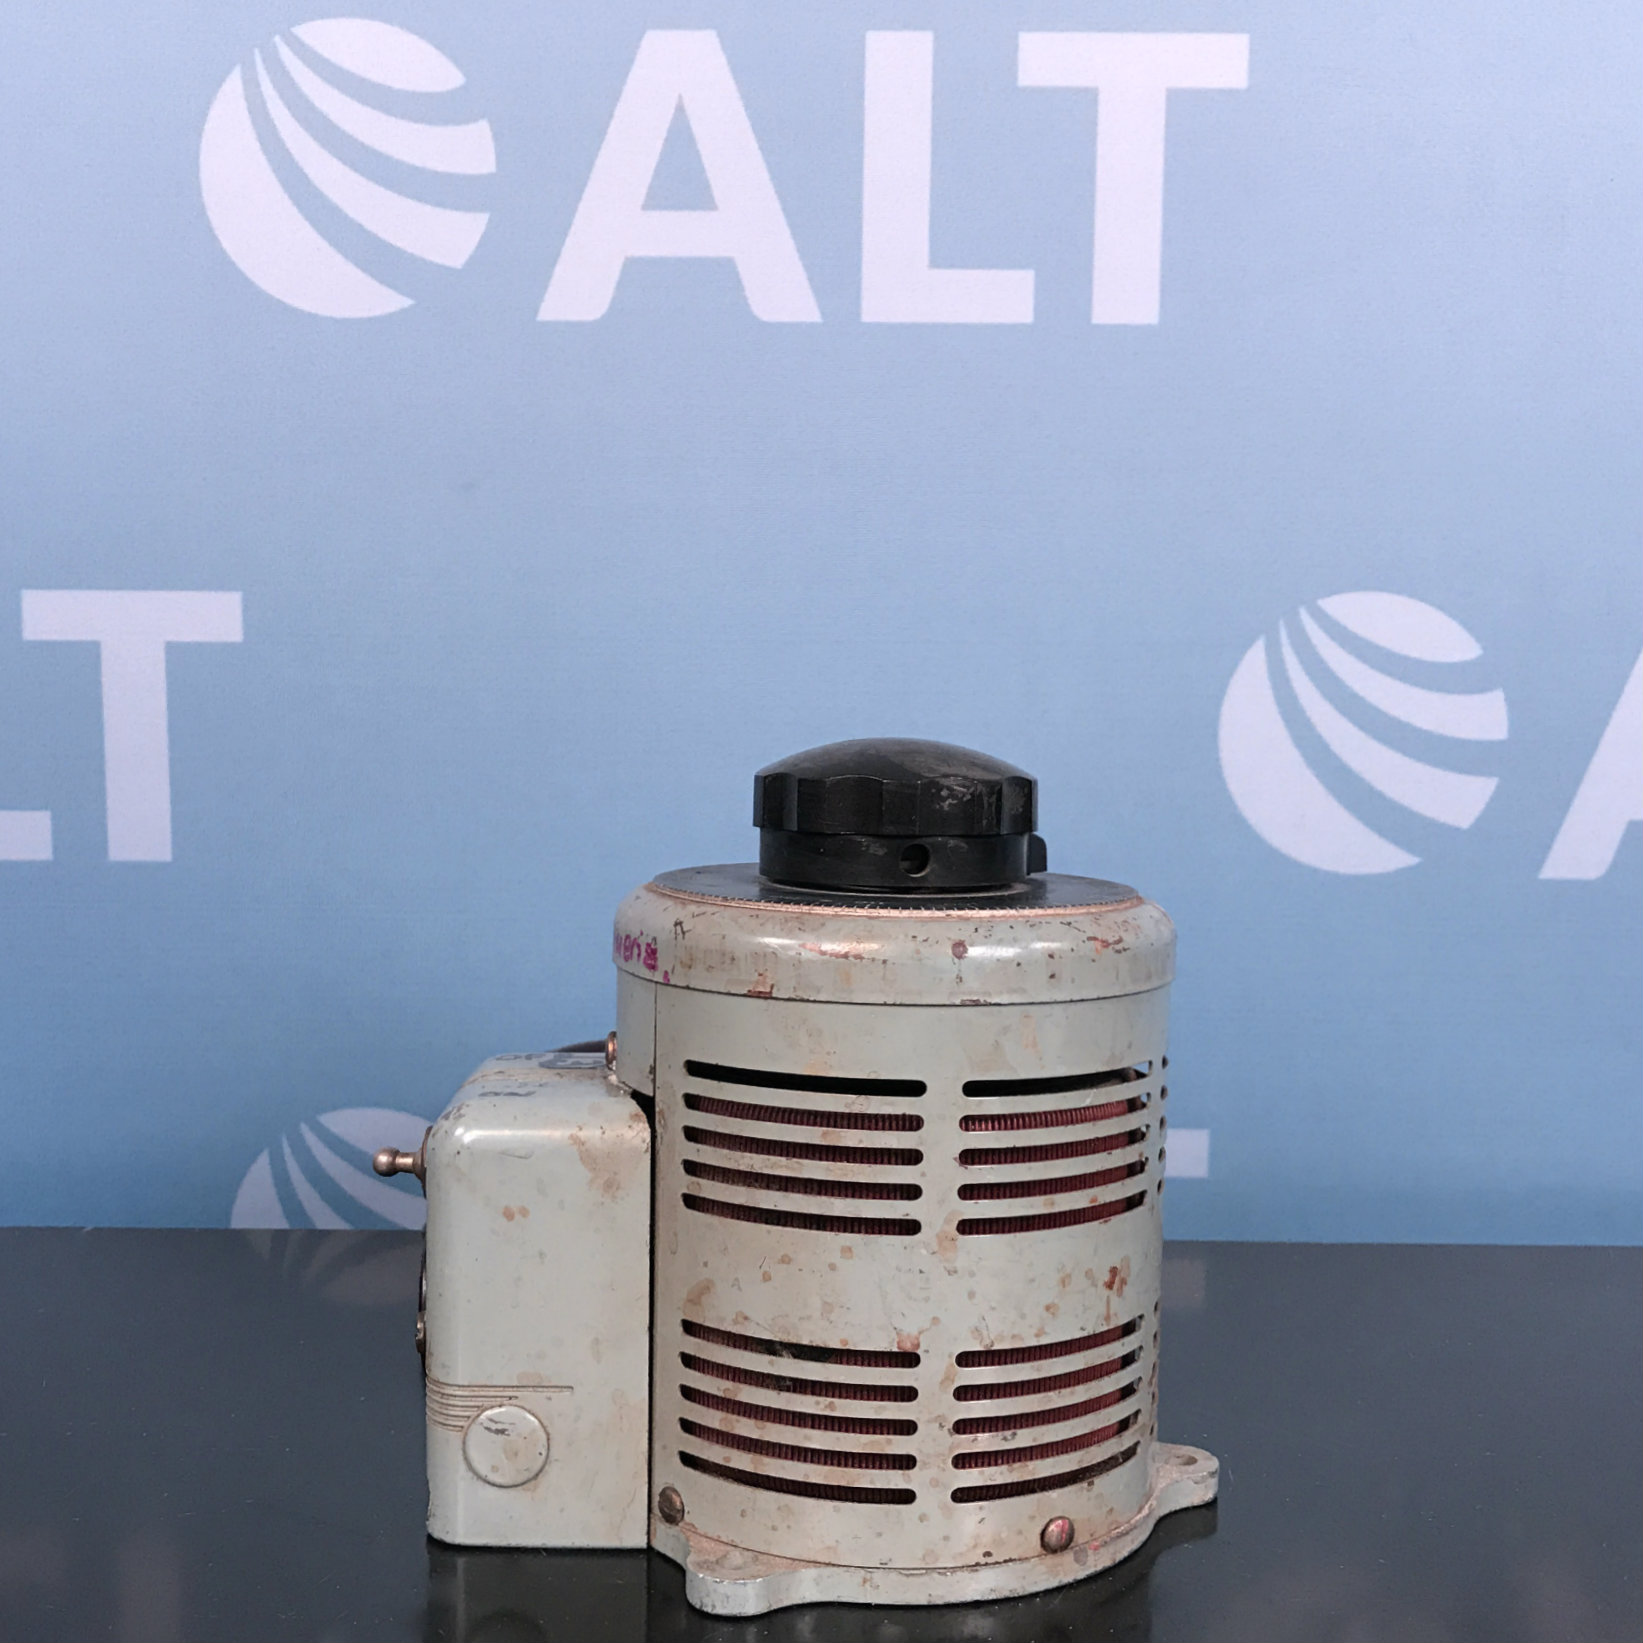 Superior Electric Type S-1138 Powerstat Variable Transformer Image